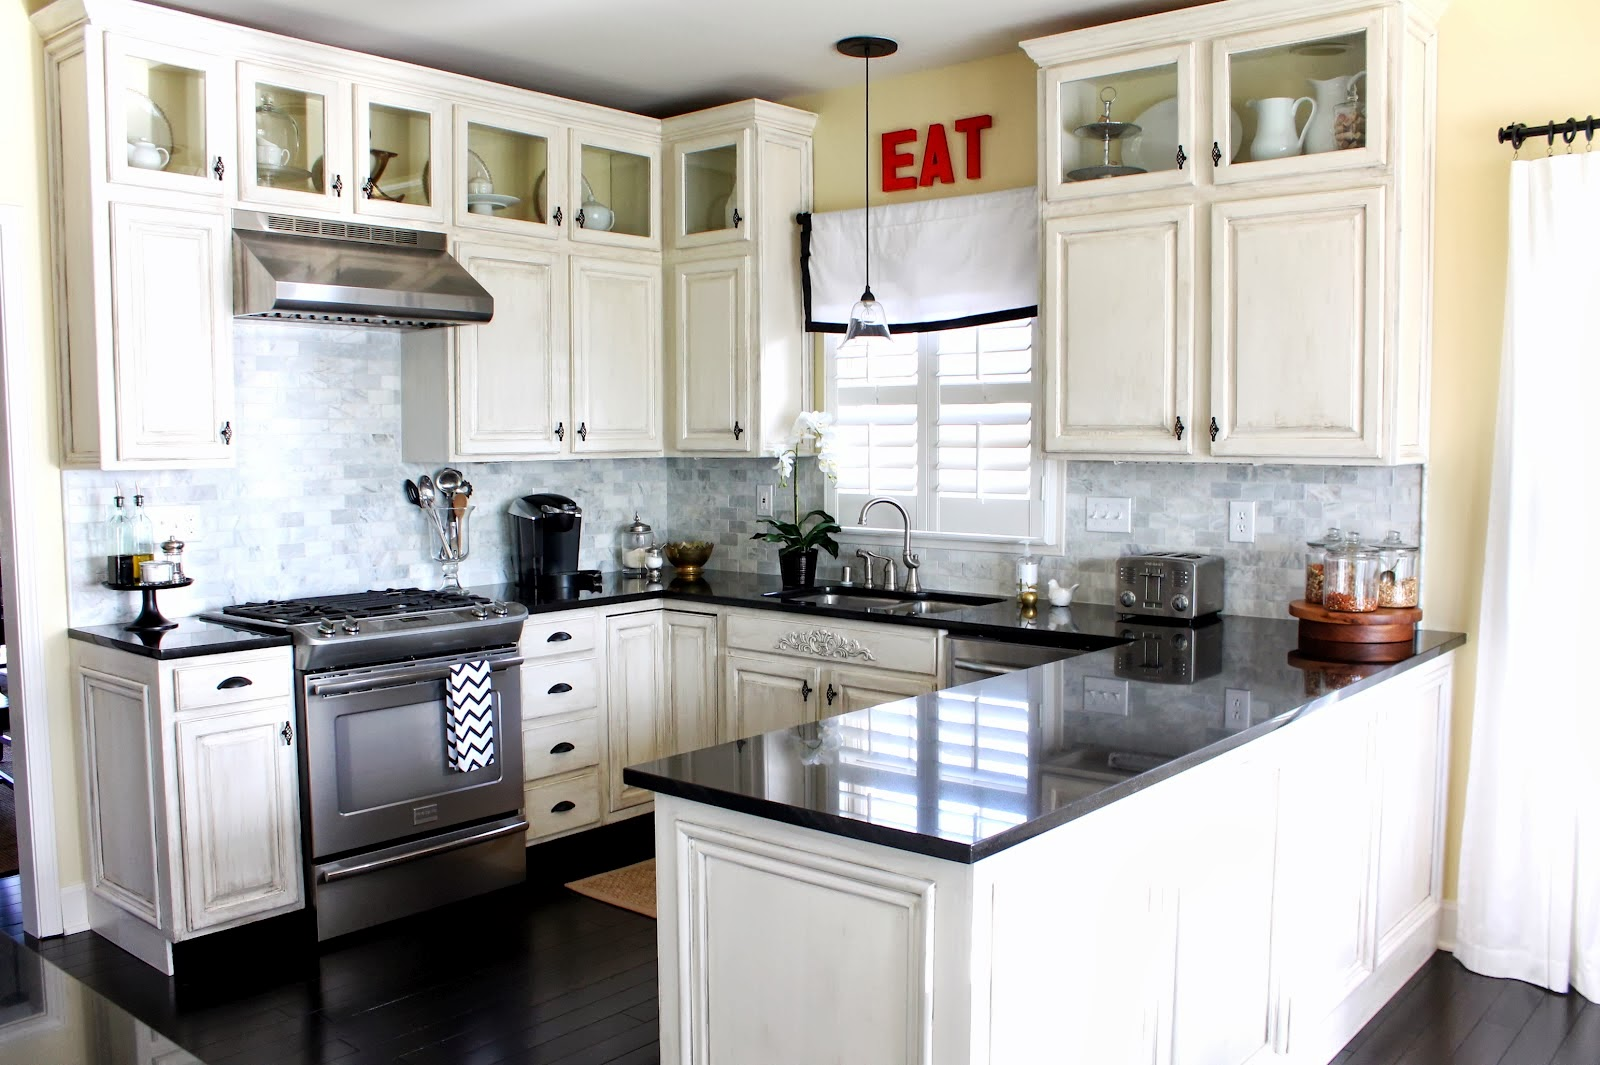 White Kitchen Cabinets all white kitchen cabinets U Shaped Kitchen Ideas With White Cabinets